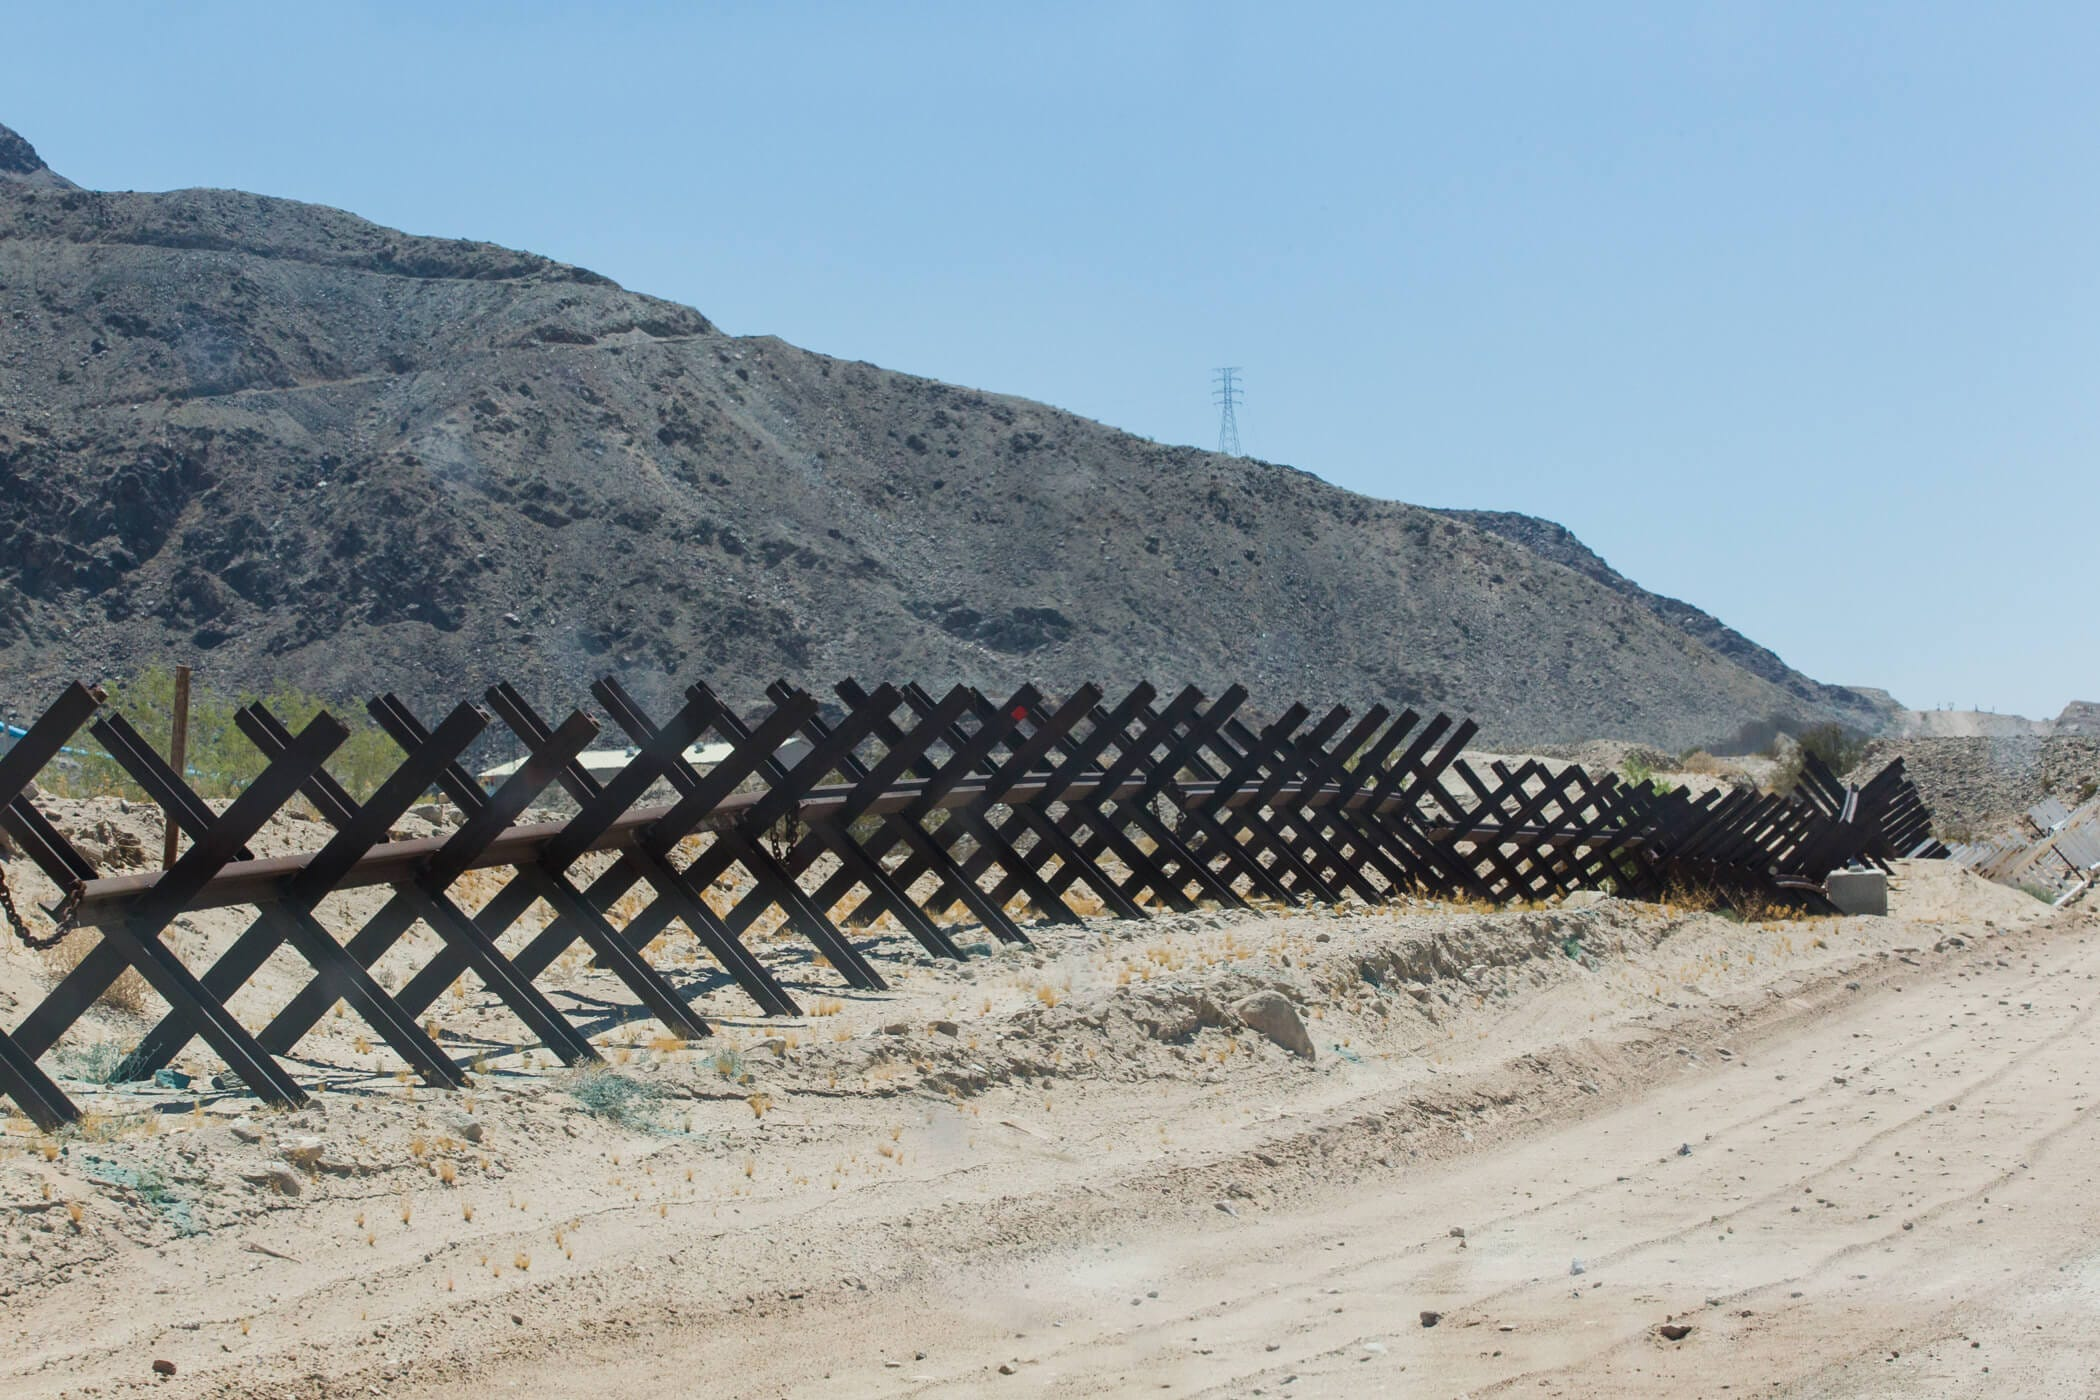 Vehicle Barrier Near Calexico Calif Hannah Gaber Usa Today Network